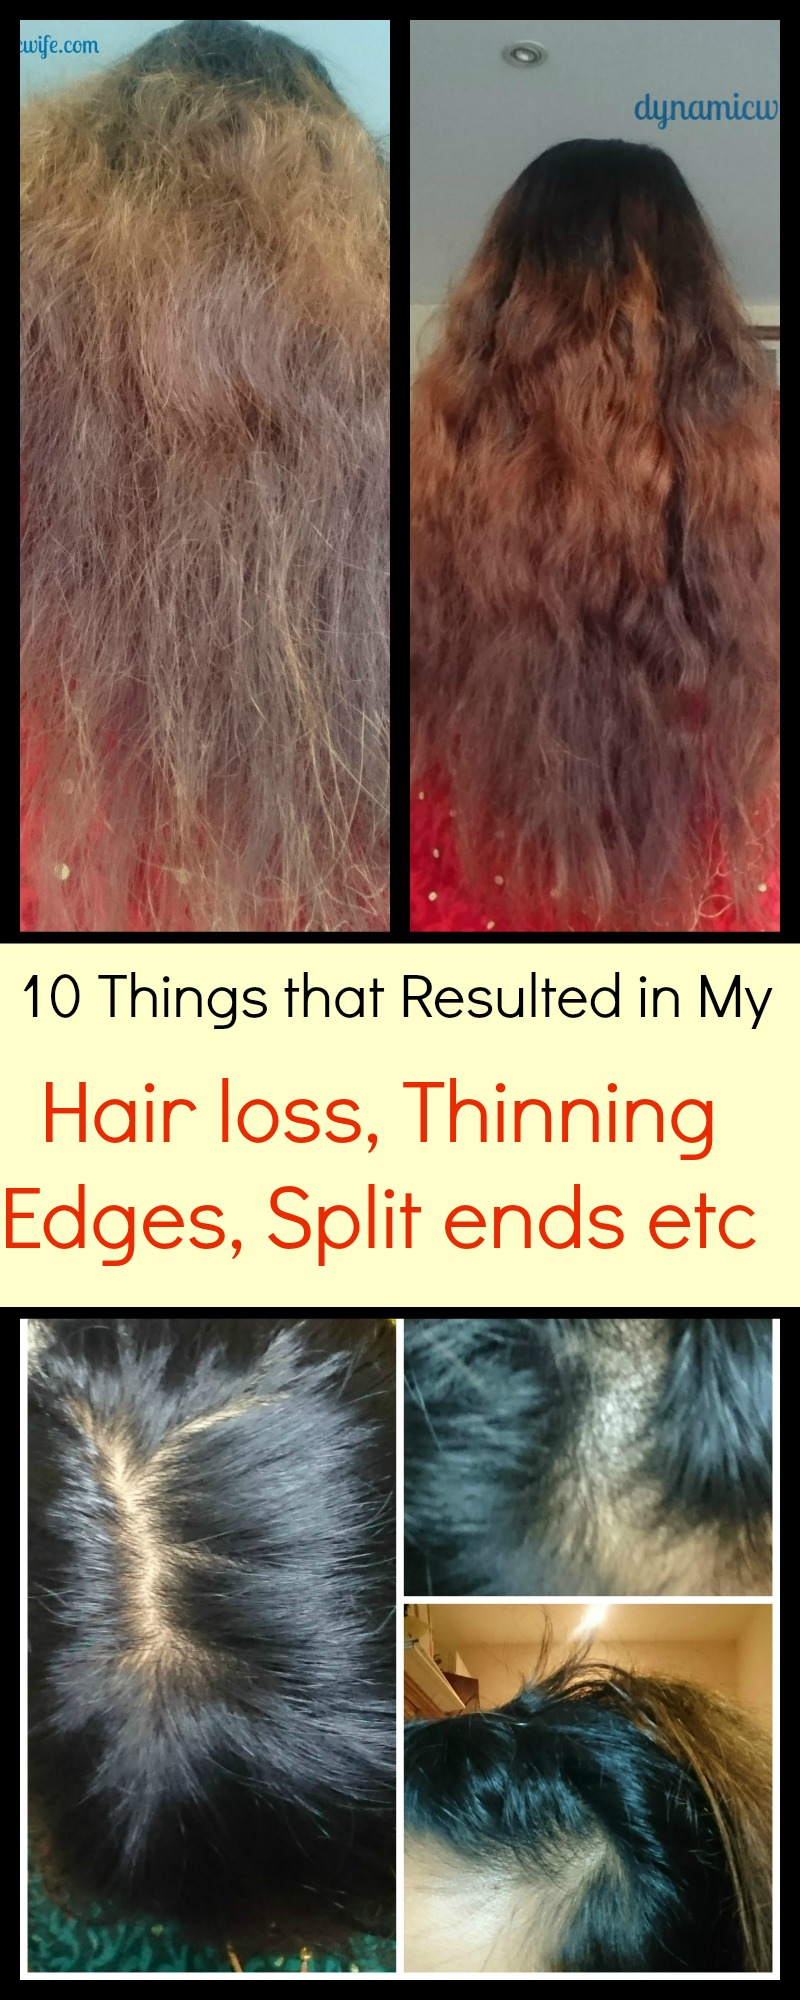 10 Causes of My Thinning Edges, Bald Spot and Split Ends! (Photos)